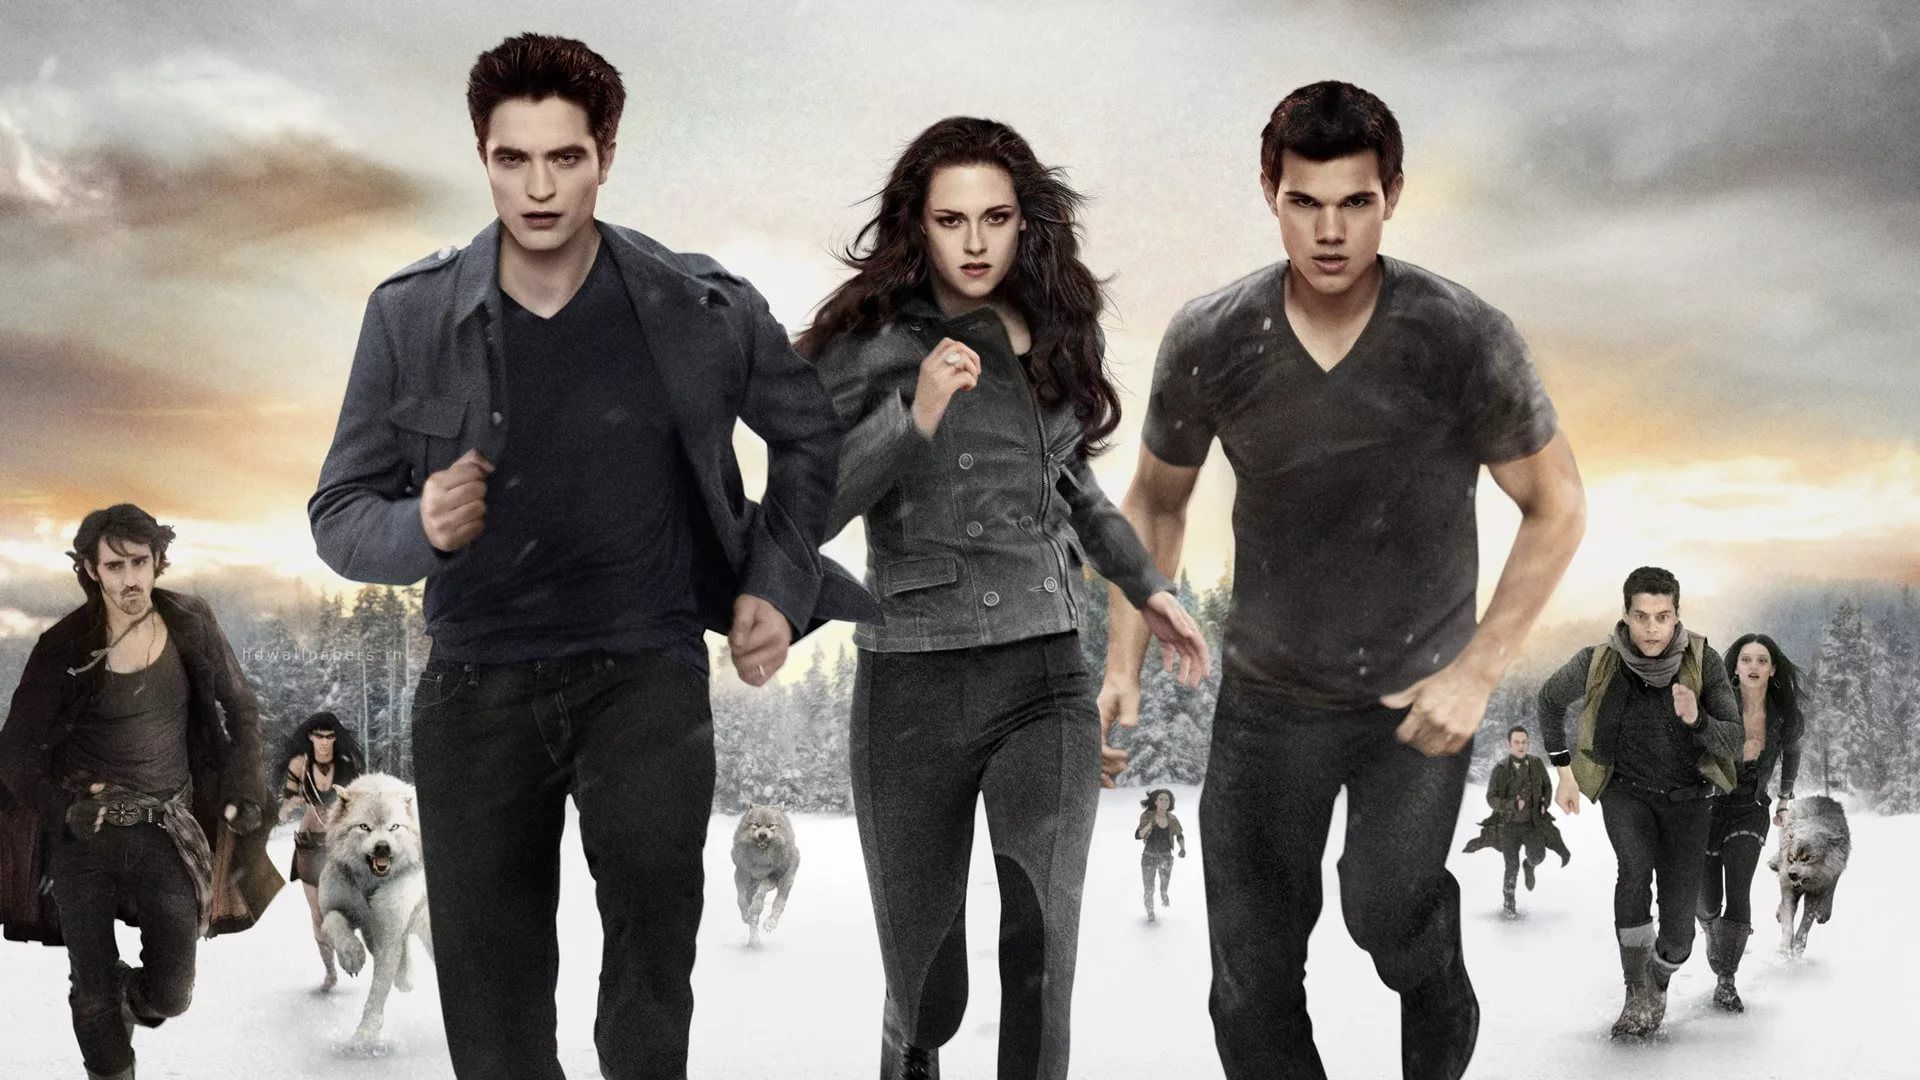 Twilight Saga wallpaper picture hd